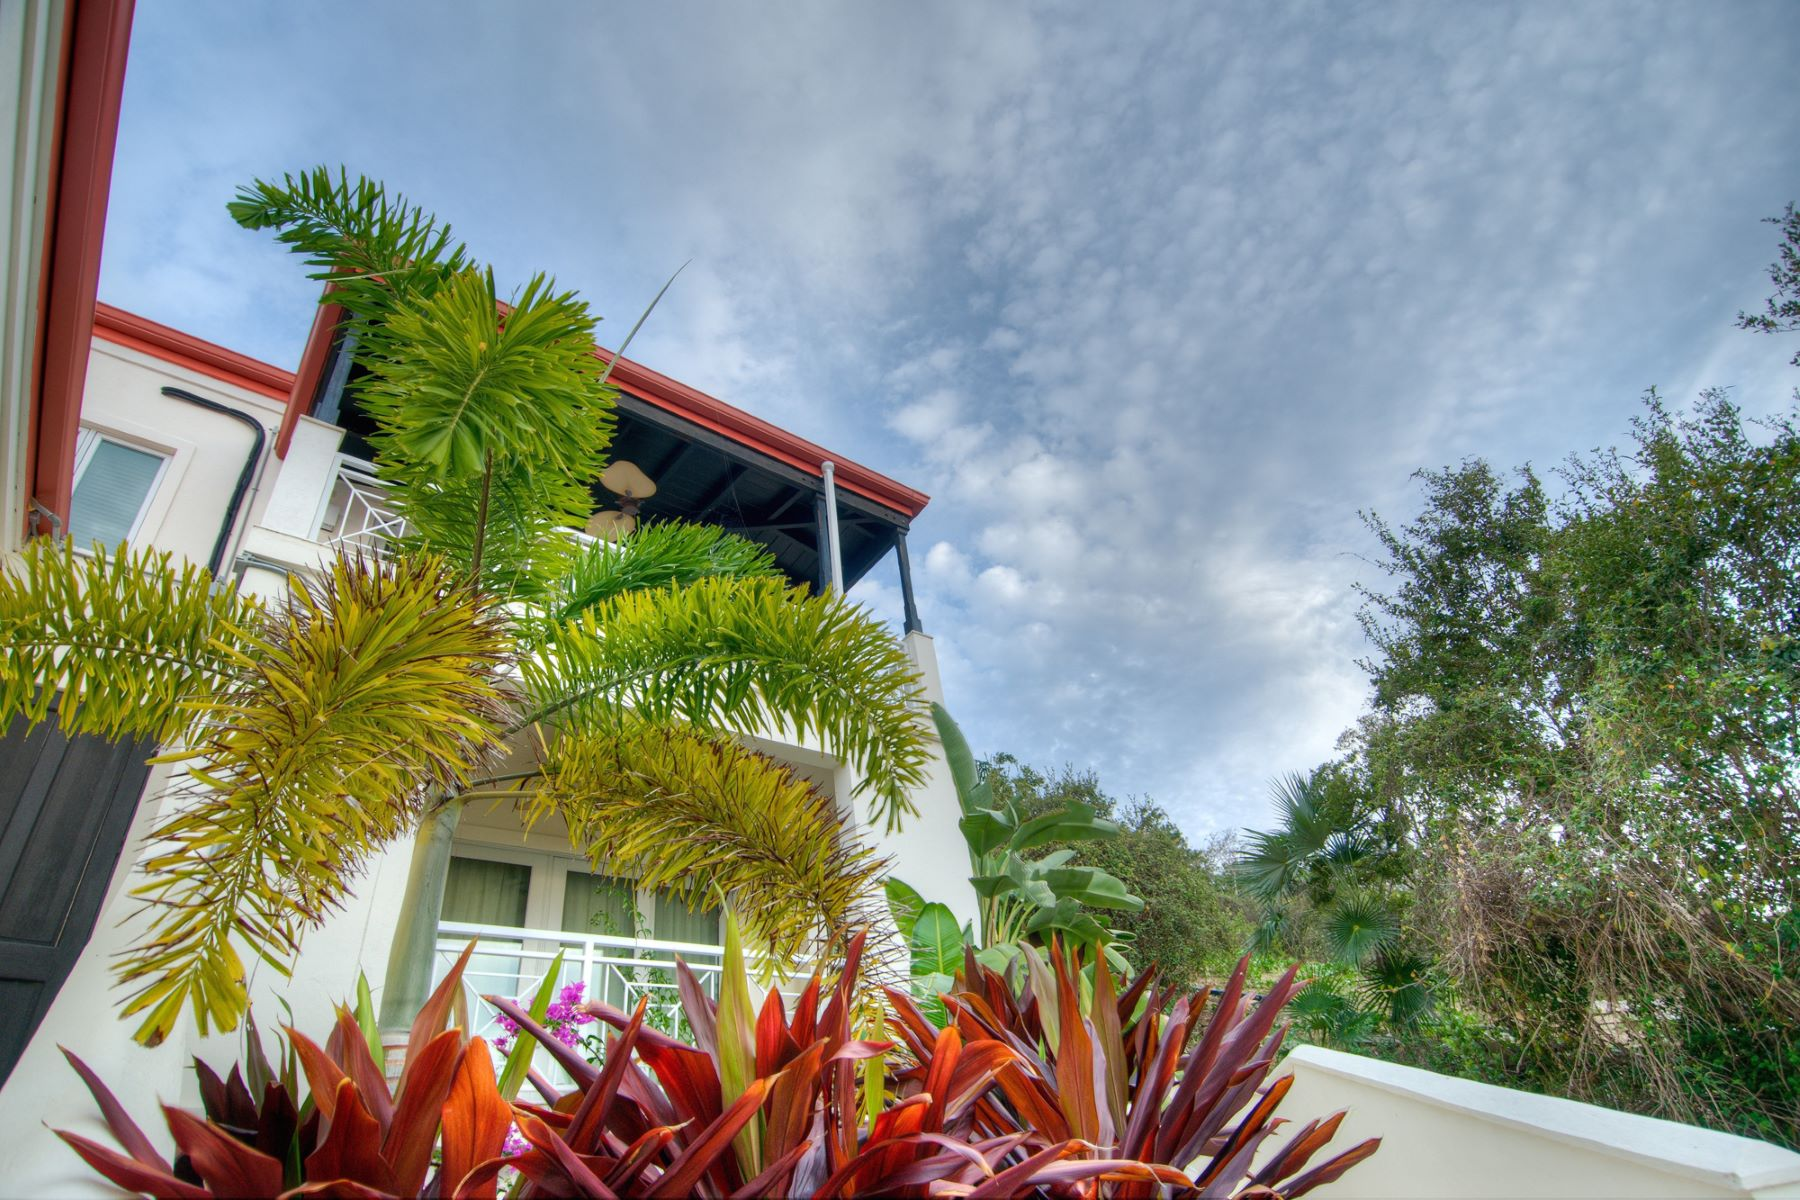 Additional photo for property listing at Ixora Villa Little Scrub, Île Scrub Iles Vierges Britanniques